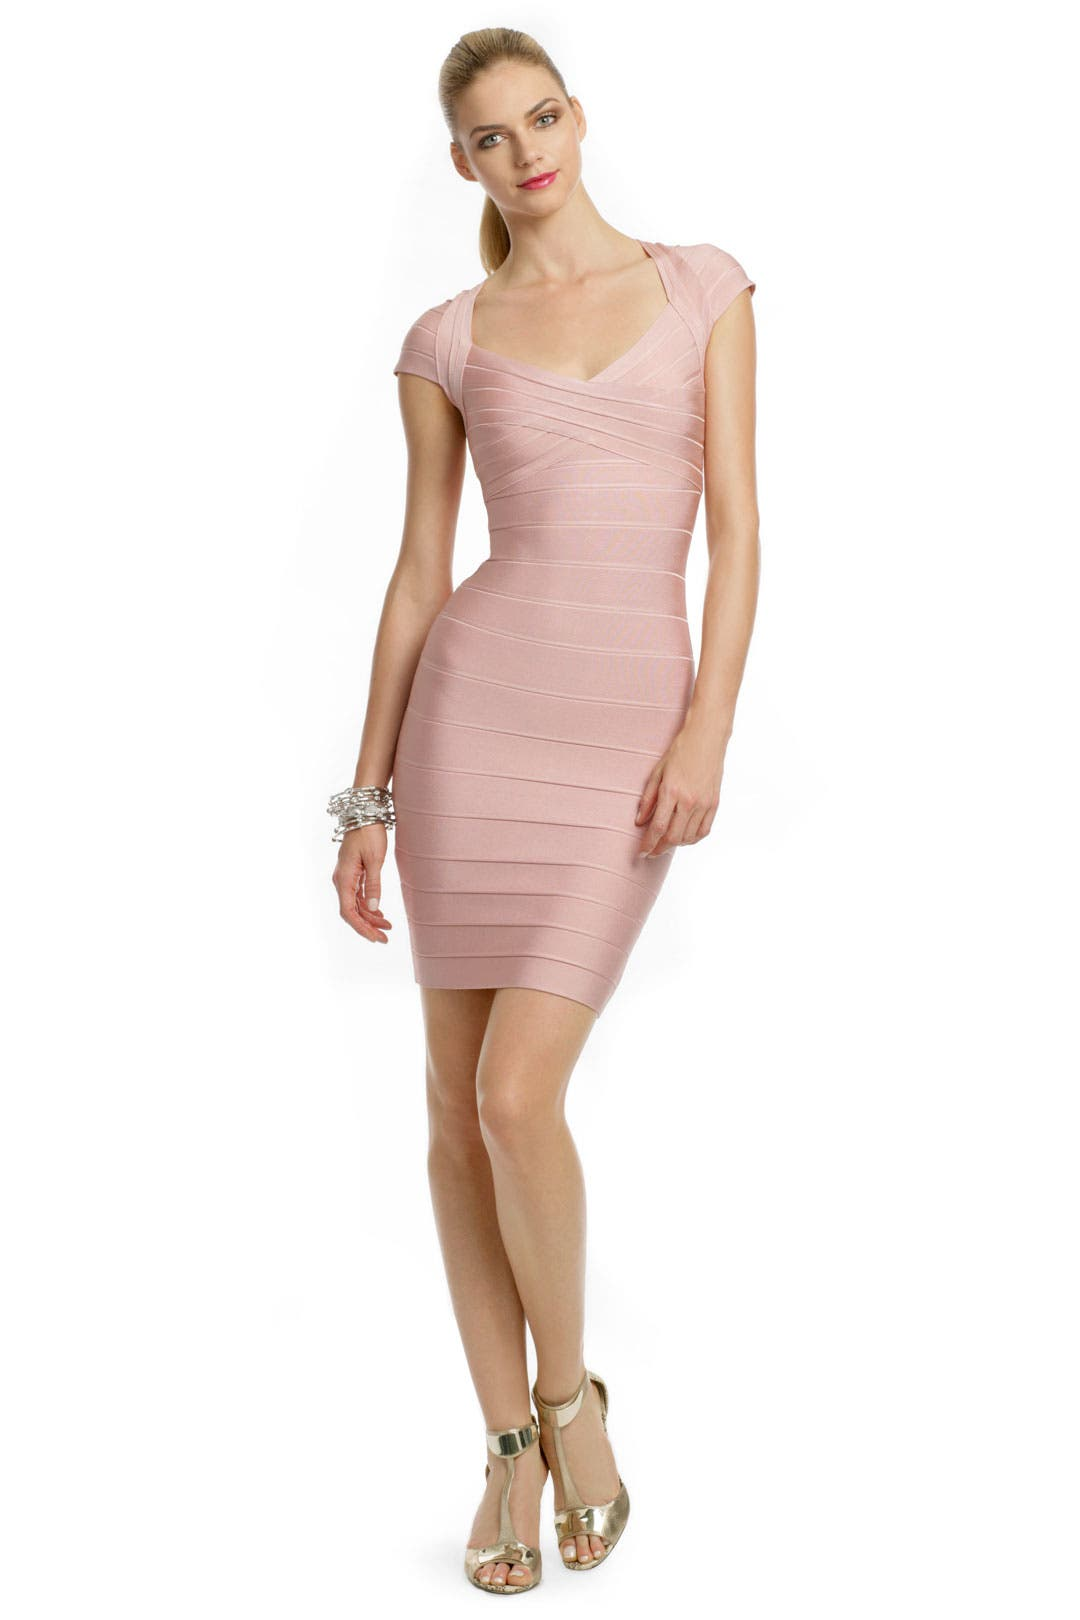 Bed of Roses Dress by Hervé Léger